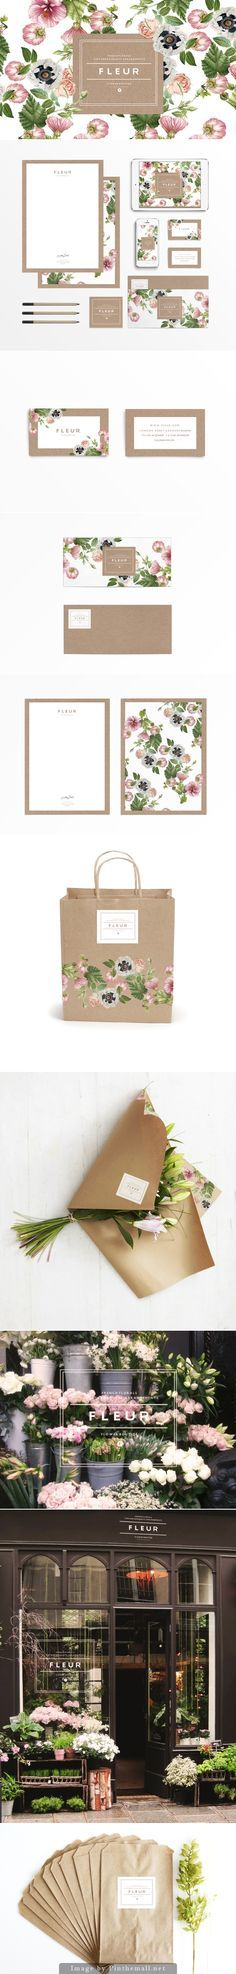 F L E U R flower shop branding designed by Judit Besze